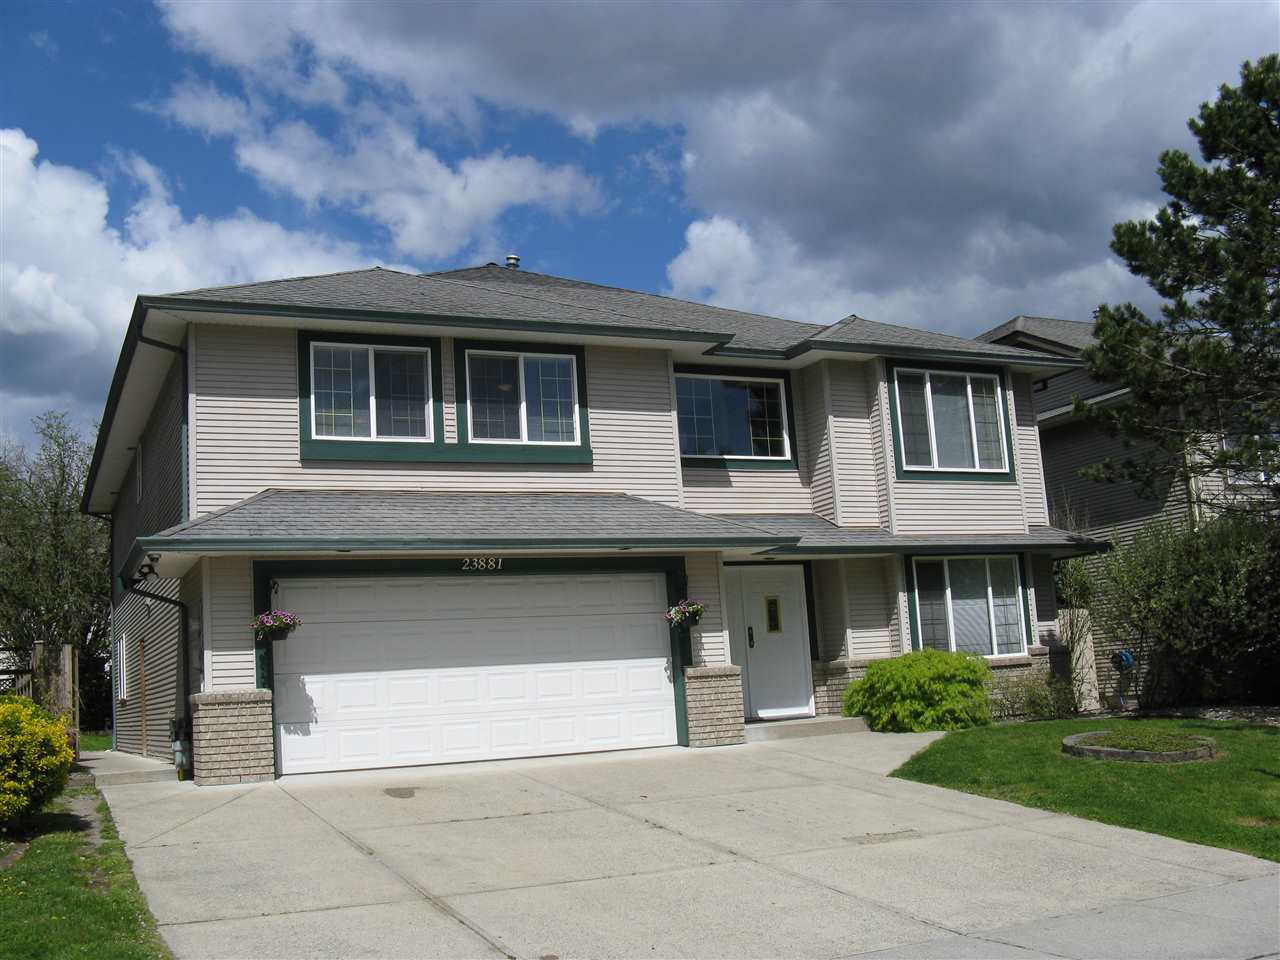 """Main Photo: 23881 114A Avenue in Maple Ridge: Cottonwood MR House for sale in """"TWIN BROOKS"""" : MLS®# R2362515"""